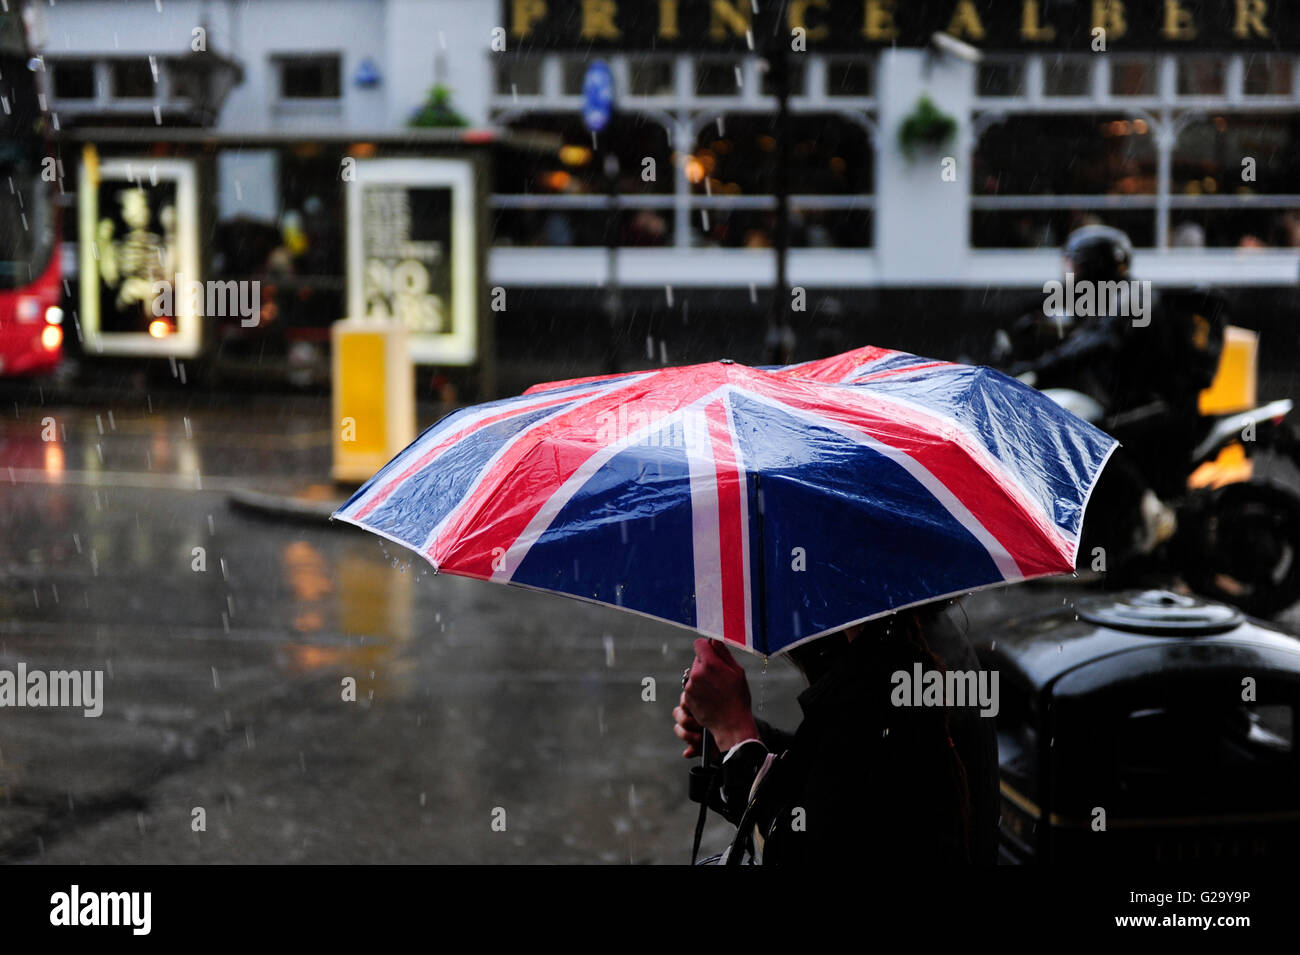 GREAT BRITAIN, London, Notting Hill, pedestrian with umbrella with Union Jack flag during London rain - Stock Image